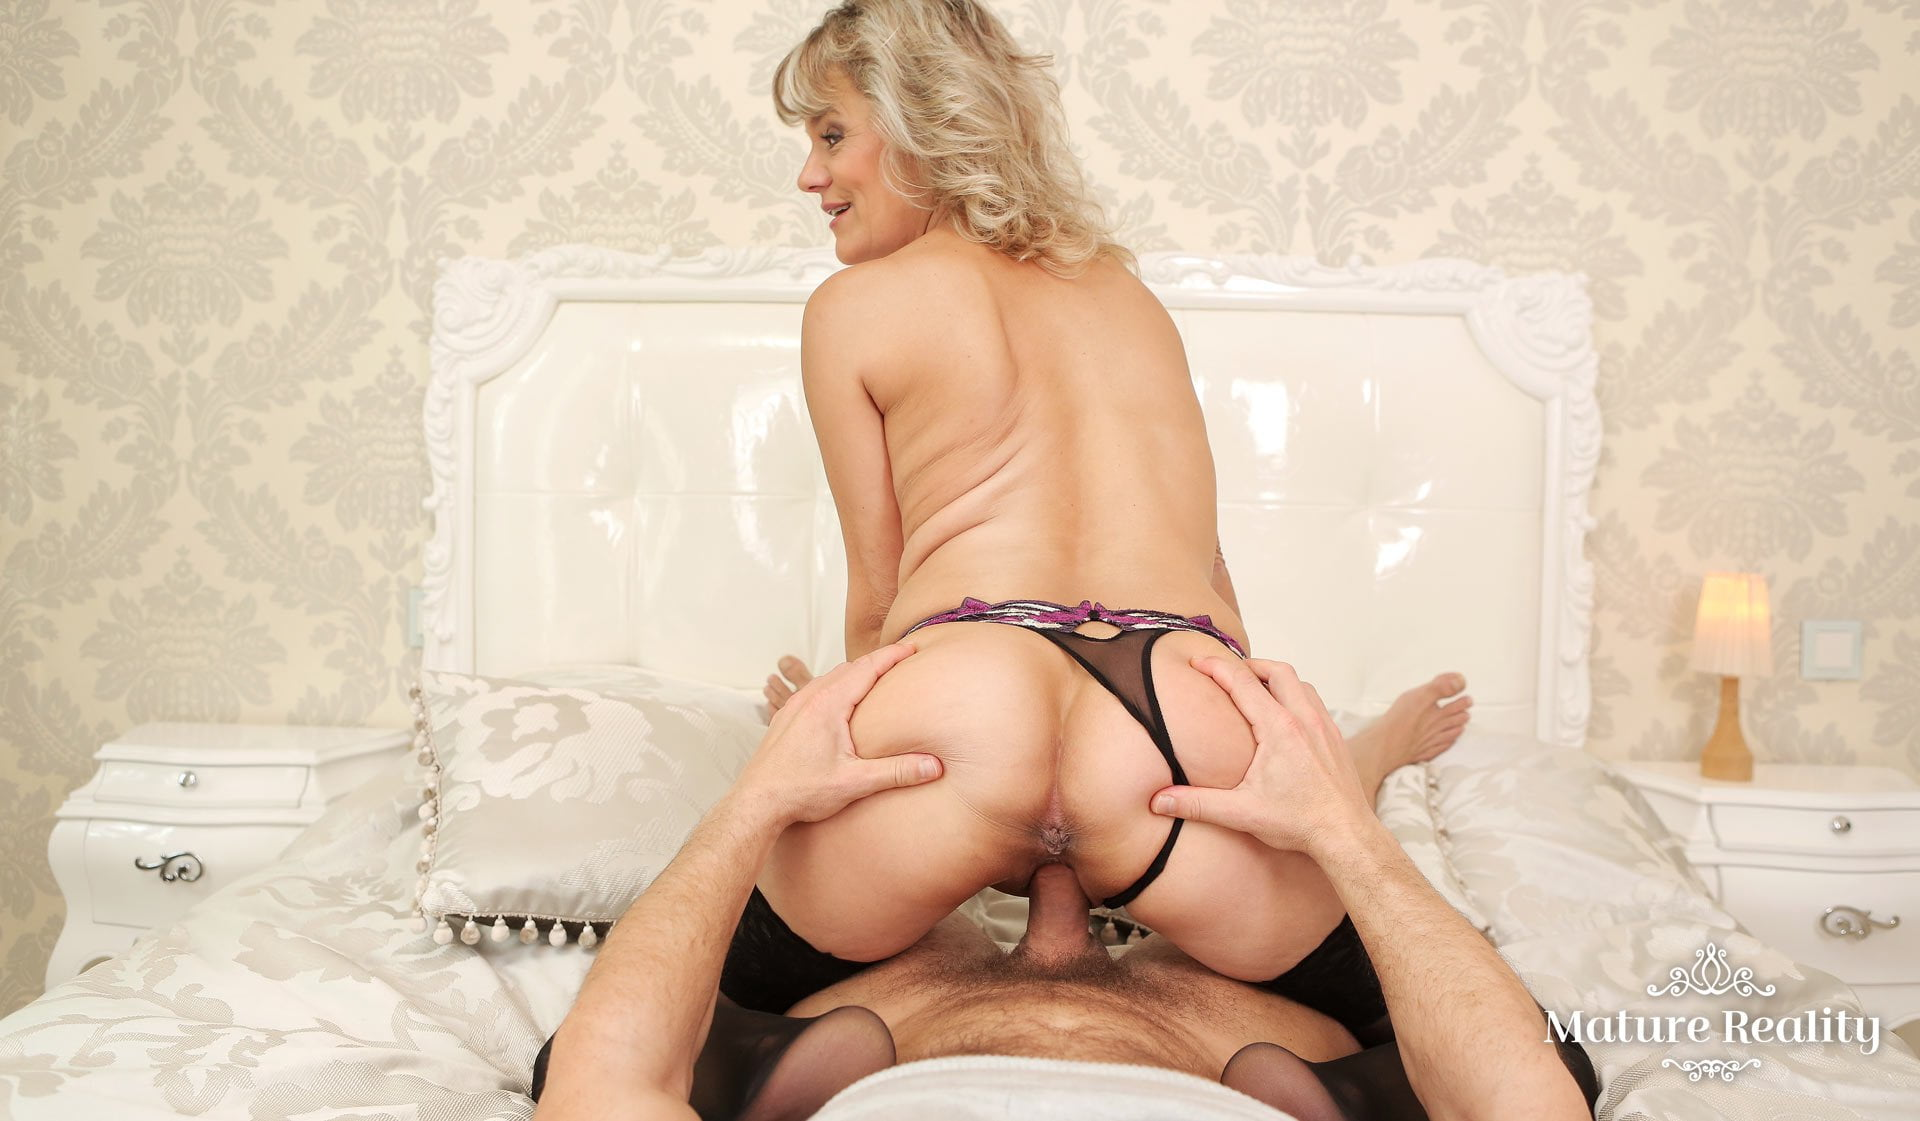 Blond Beauty Reverse Cowgirl